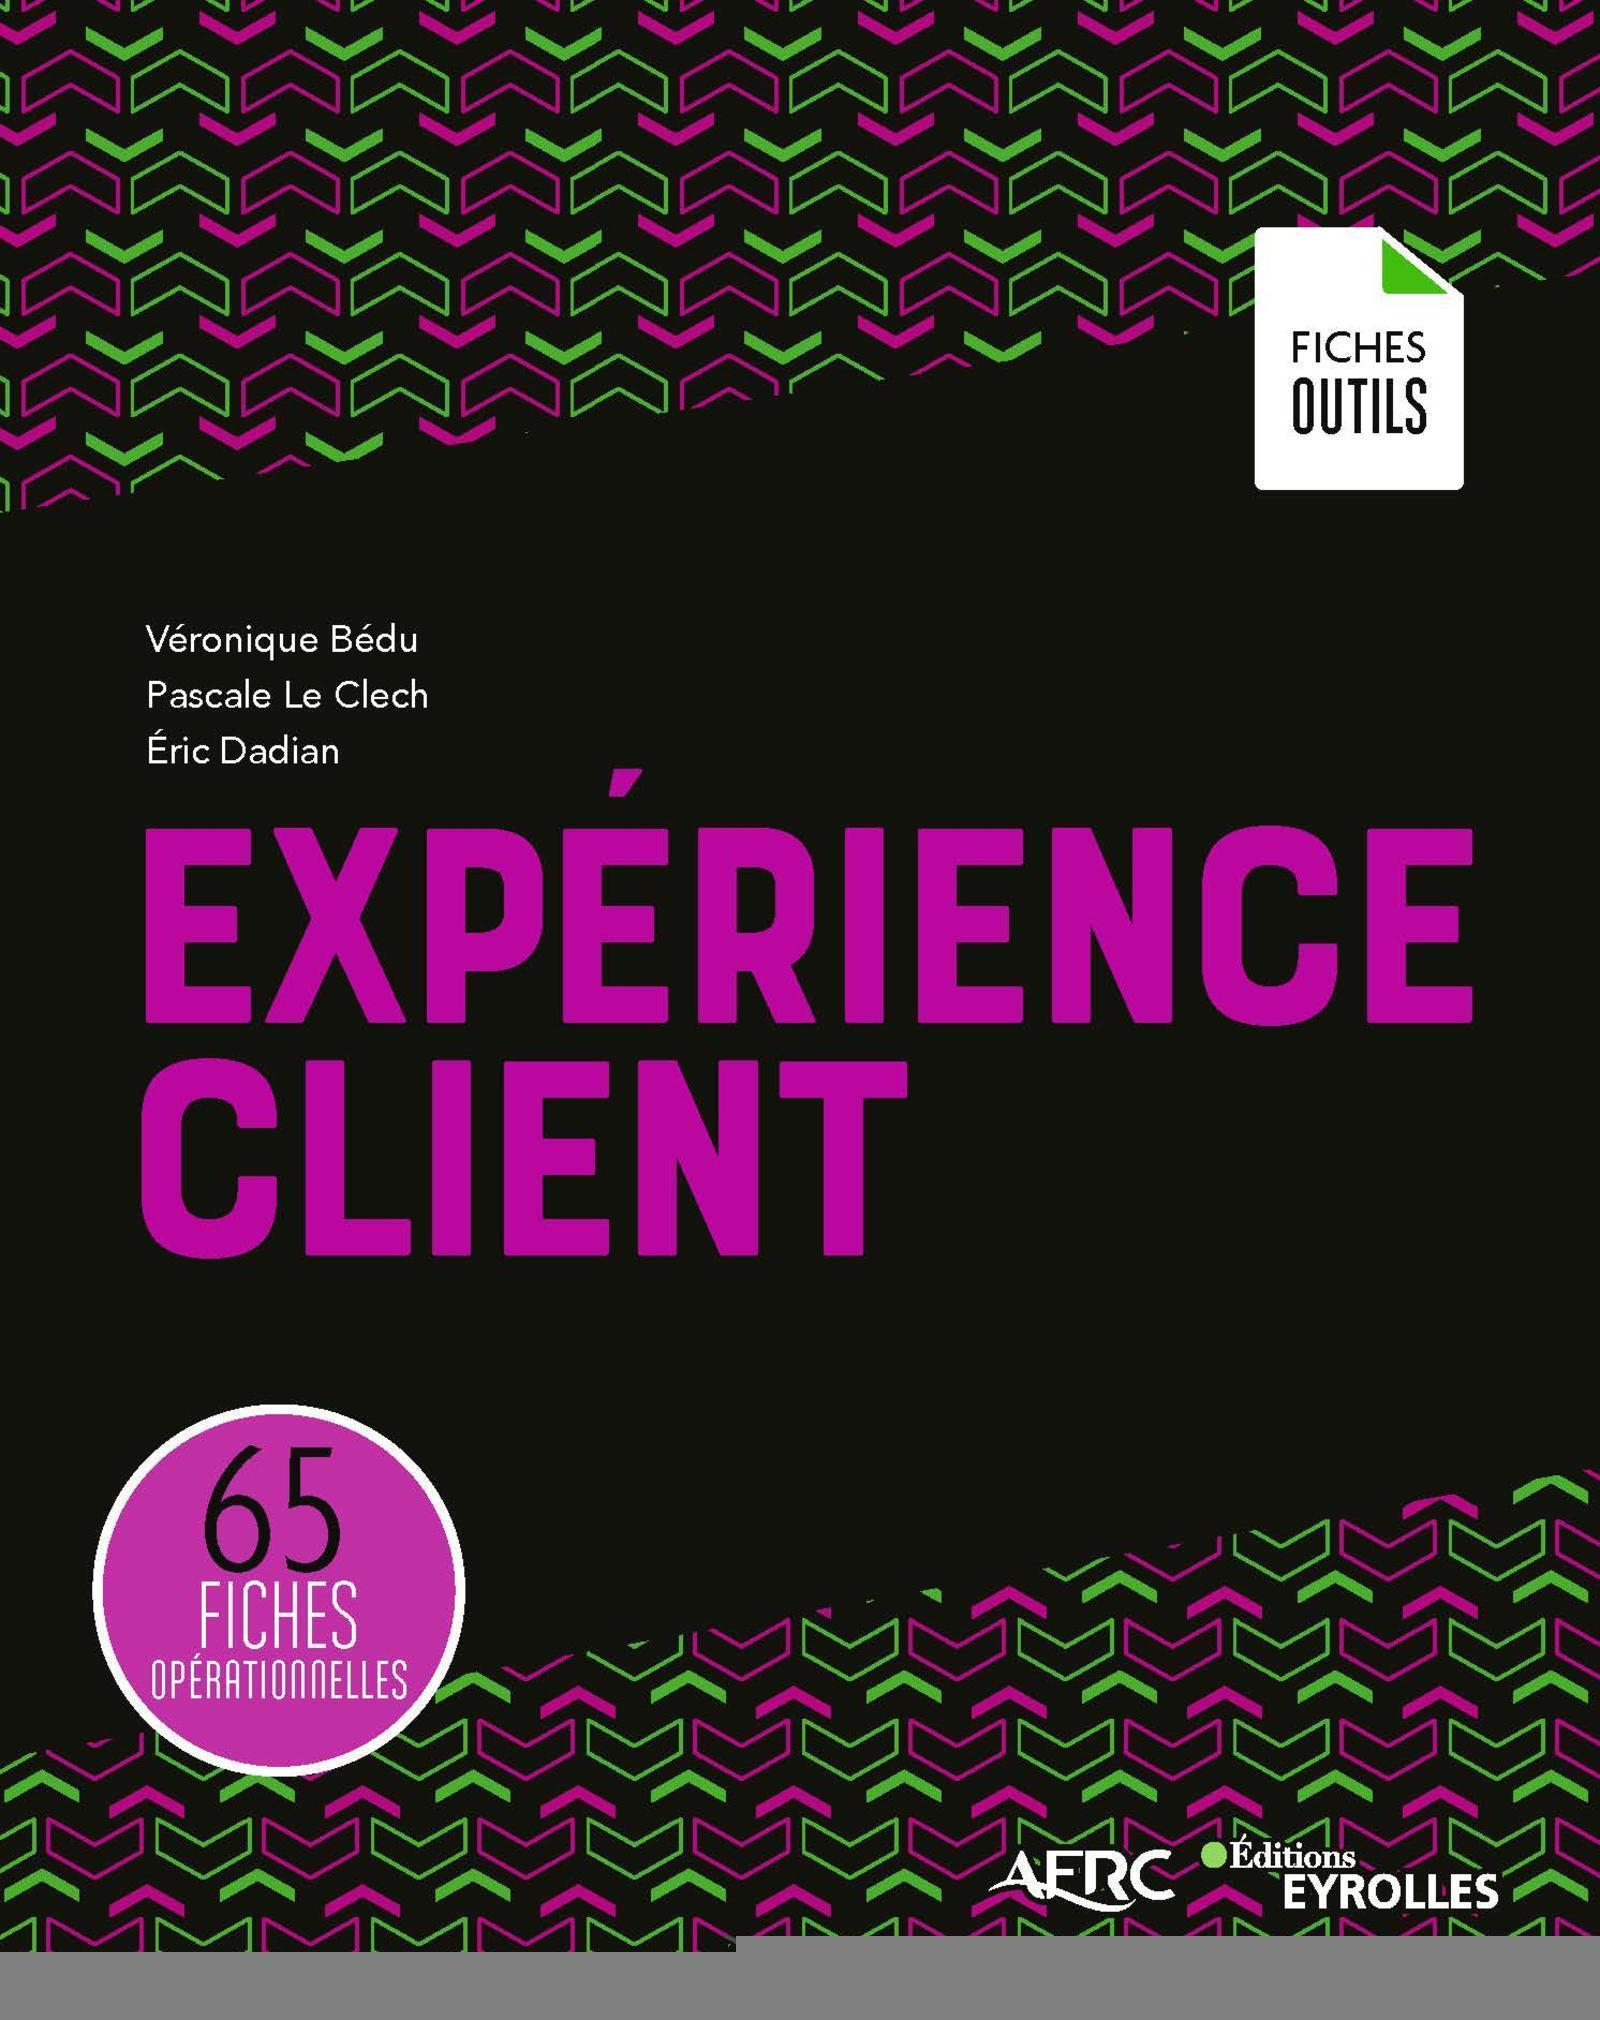 EXPERIENCE CLIENT